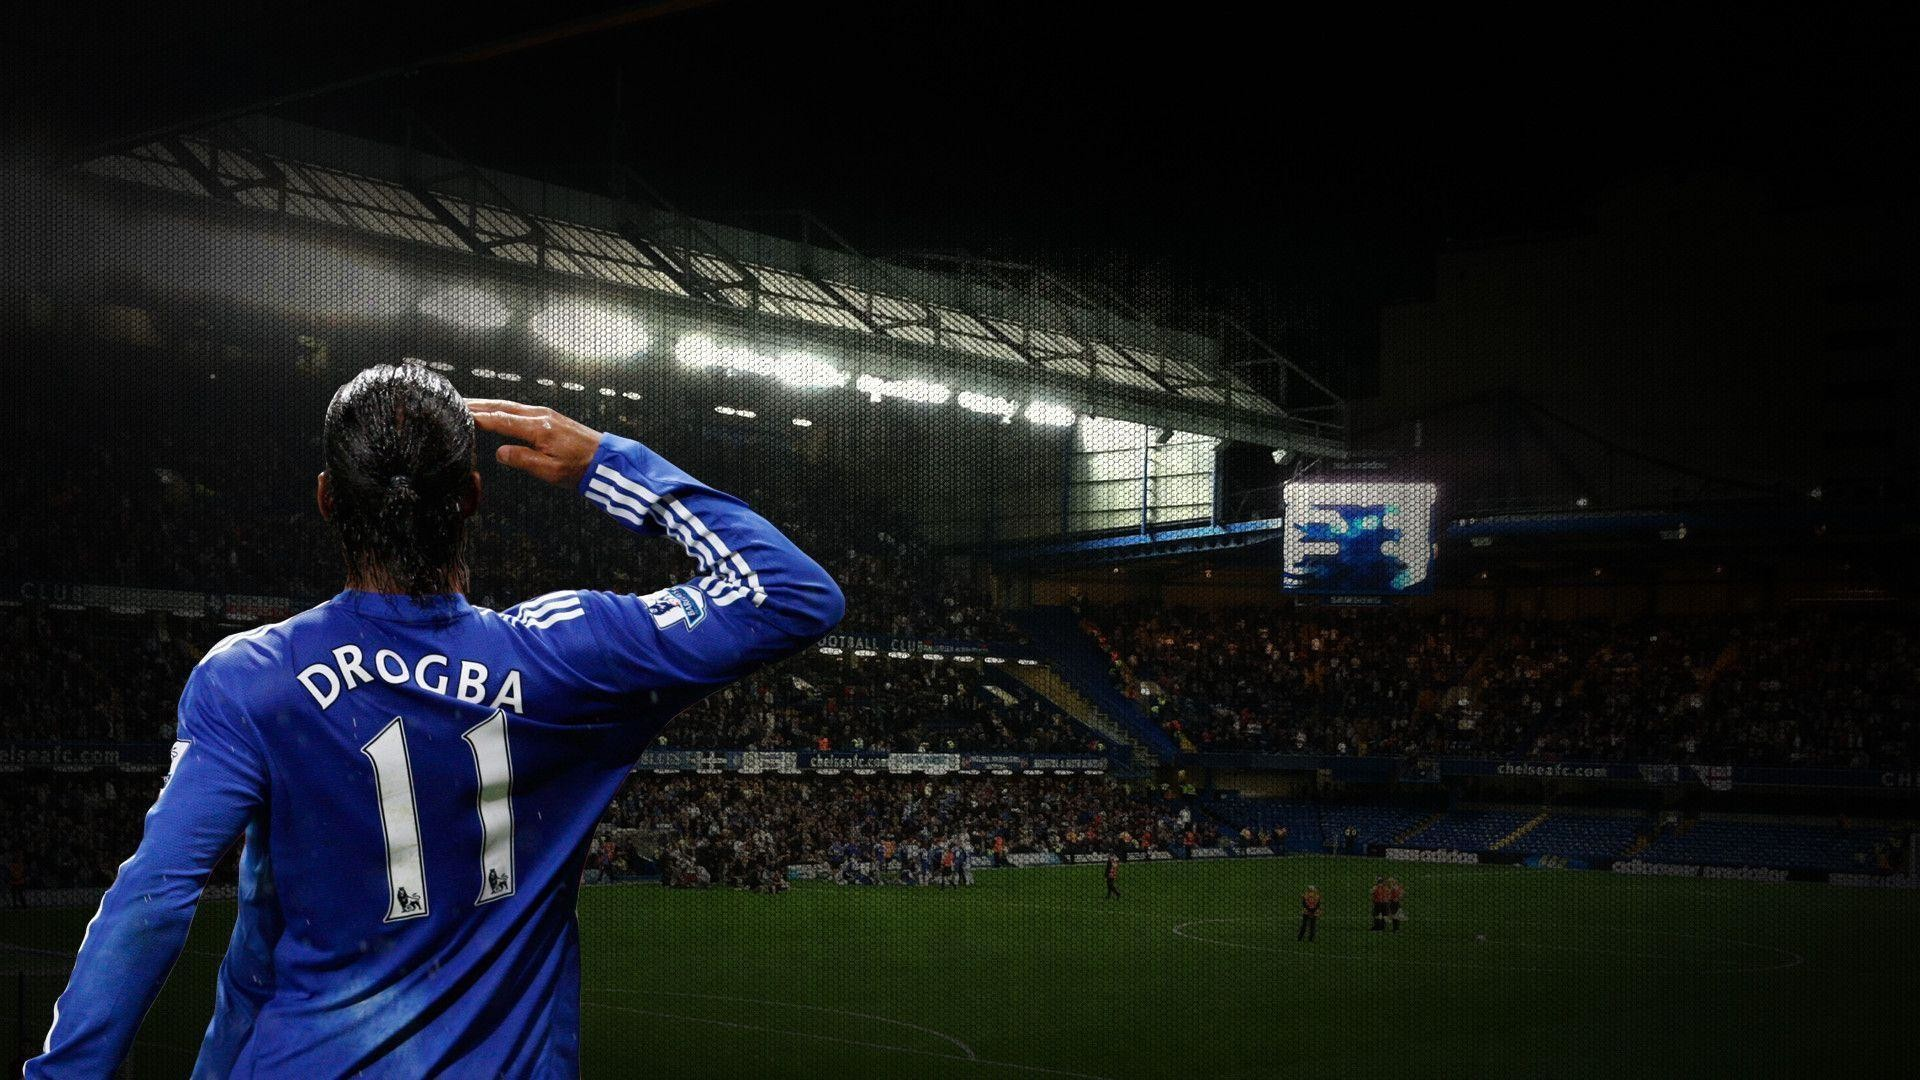 Drogba chelsea wallpaper 1920x1080 drogba wallpaper graphics forum talk chelsea voltagebd Image collections